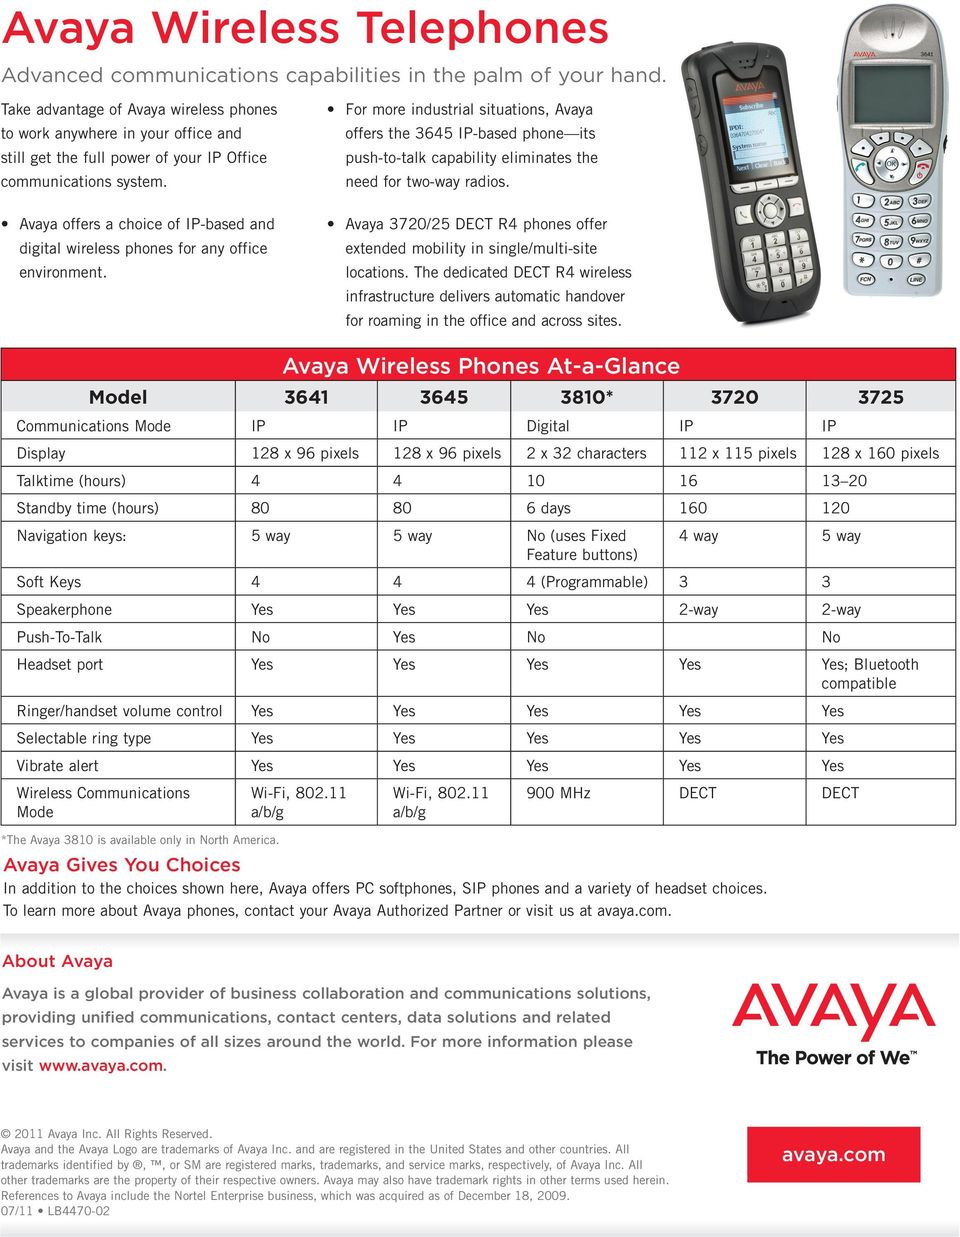 Avaya offers a choice of IP-based and digital wireless phones for any office environment.